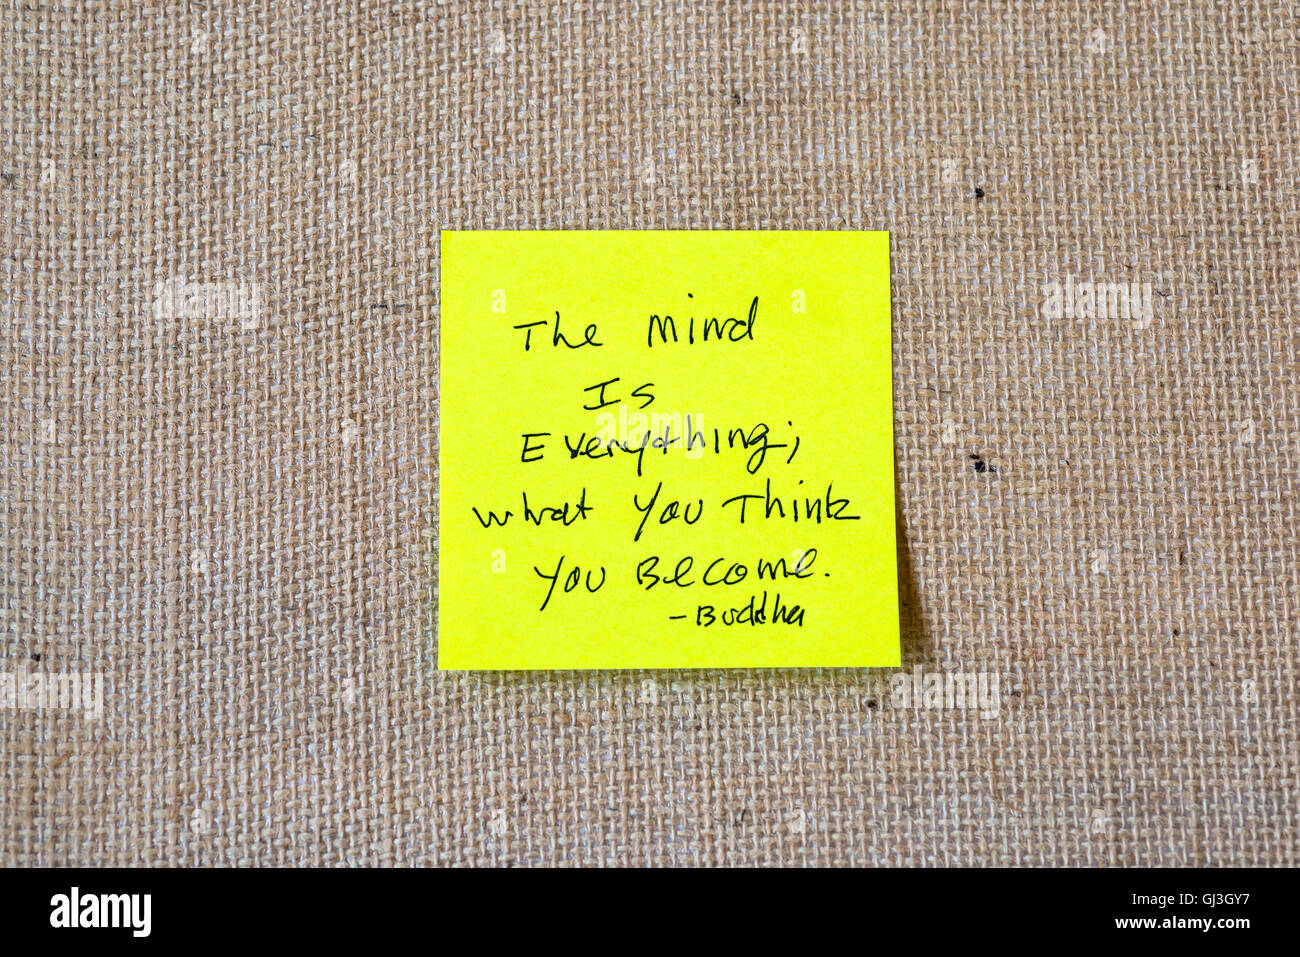 quote by Buddha written on sticky notes on a burlap background. - Stock Image